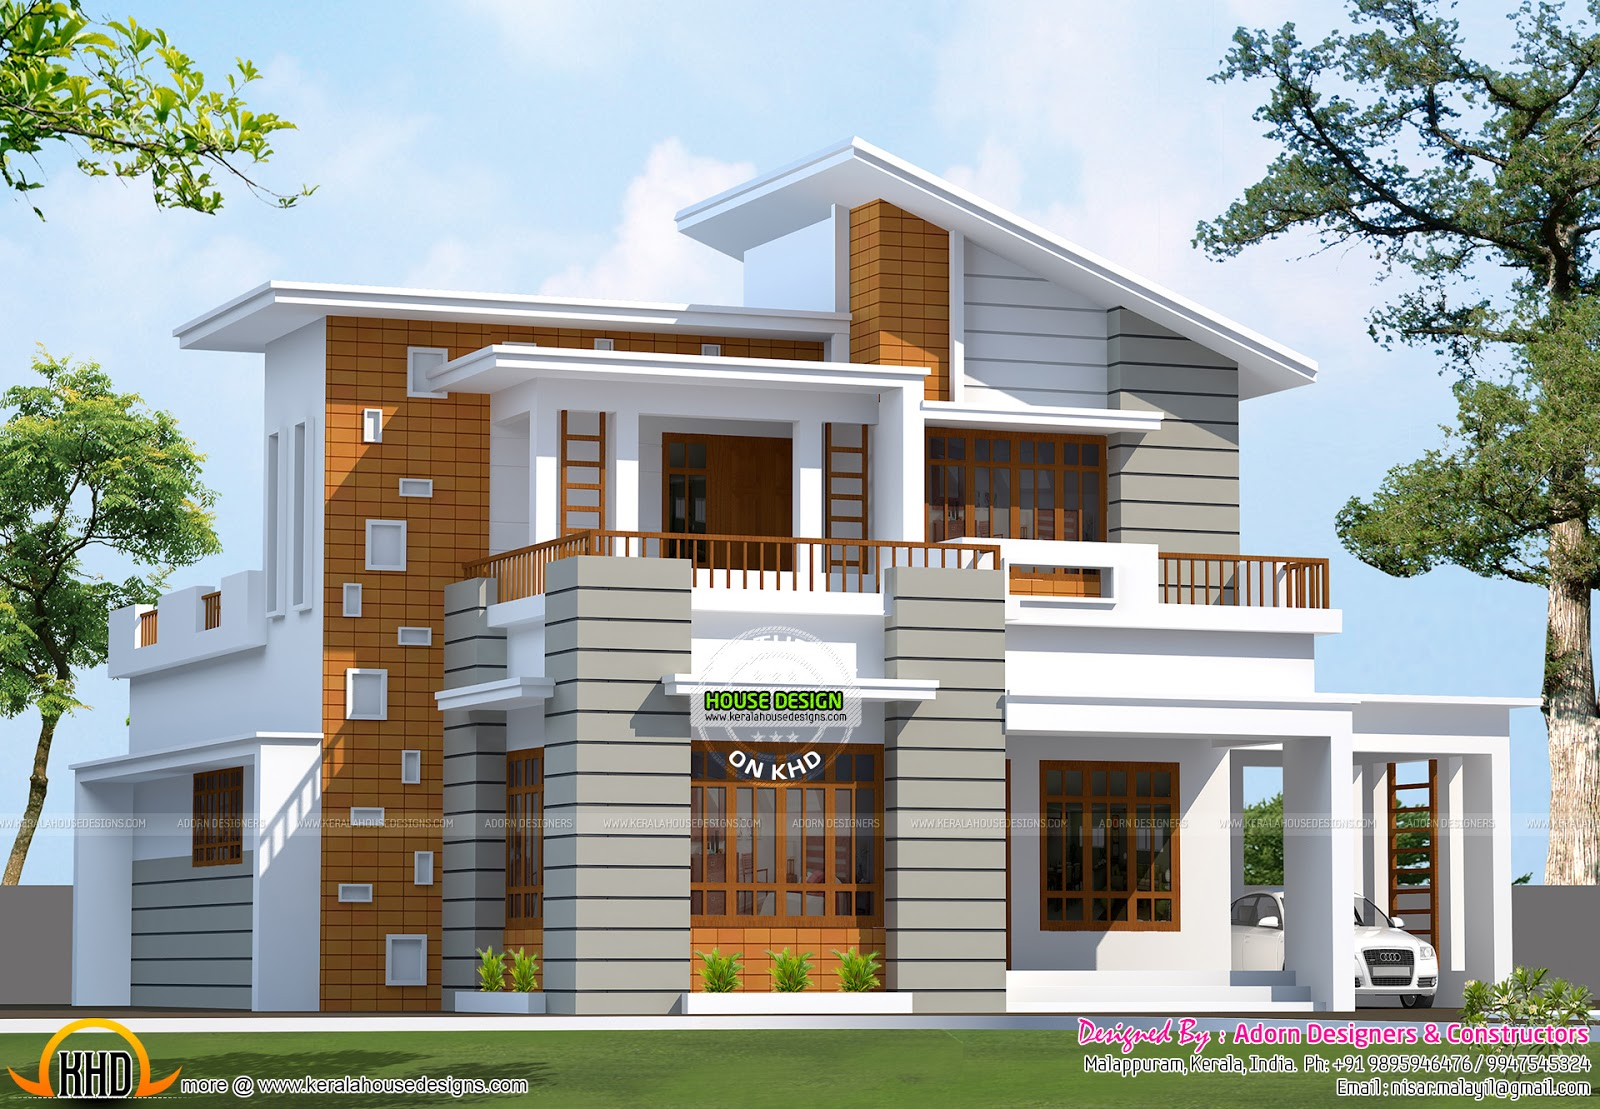 Indian house outlook design modern house for House designs